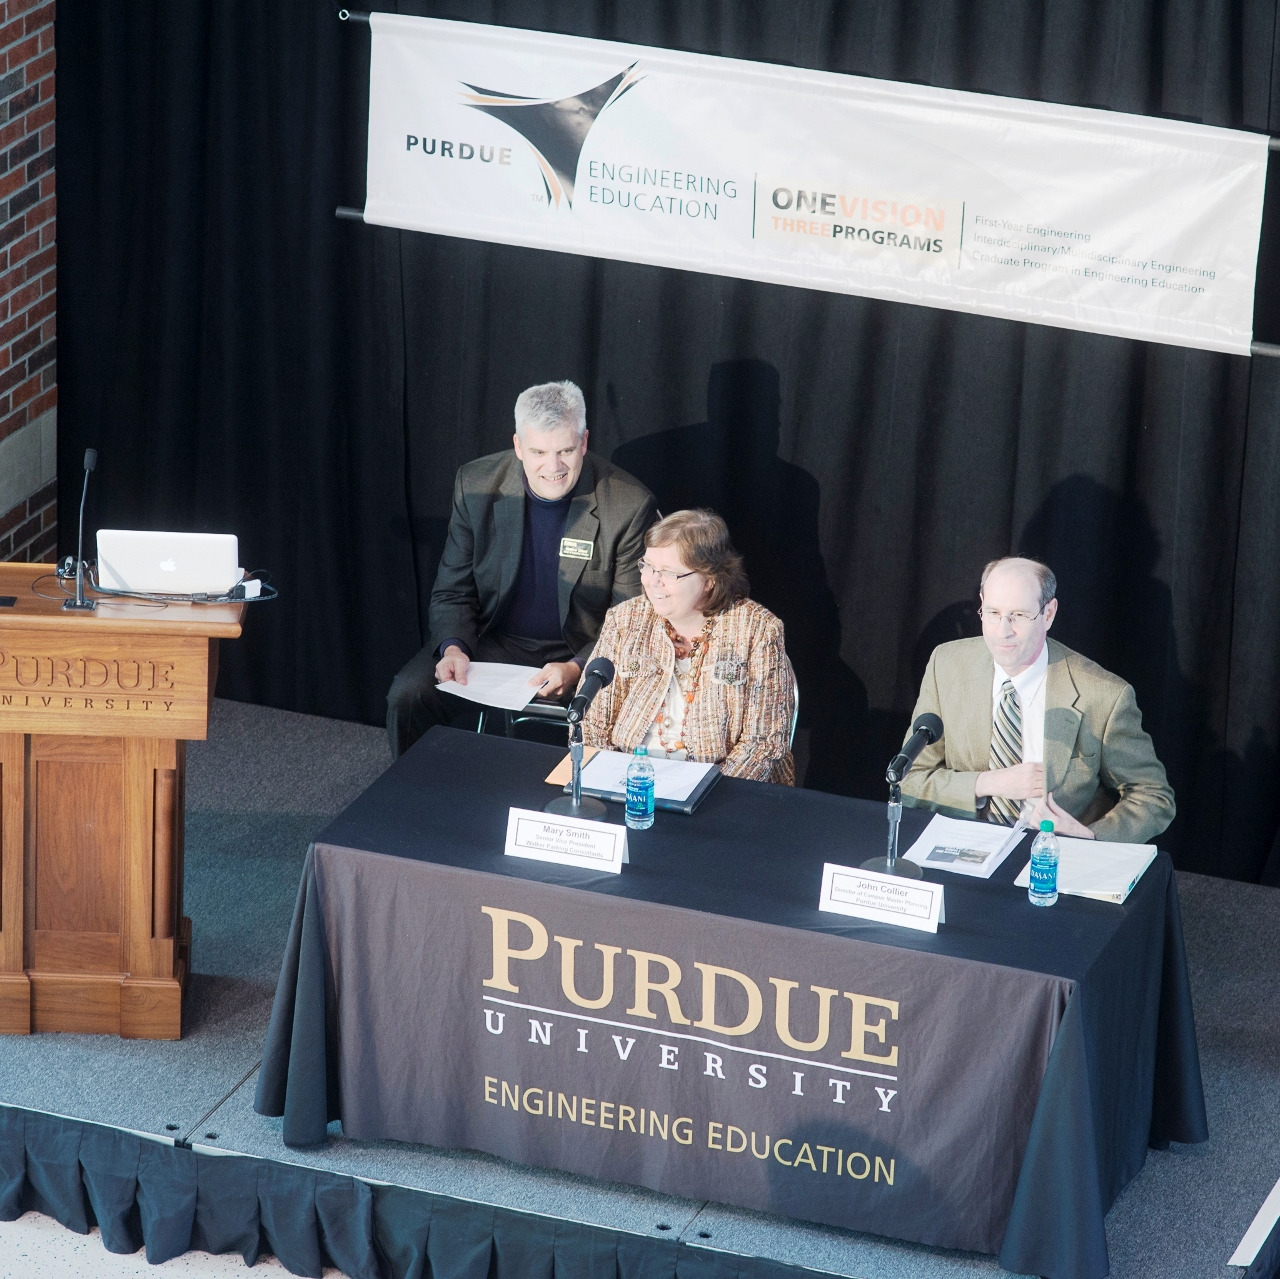 Moderator Matt Ohland with presenters Mary Smith and John Collier